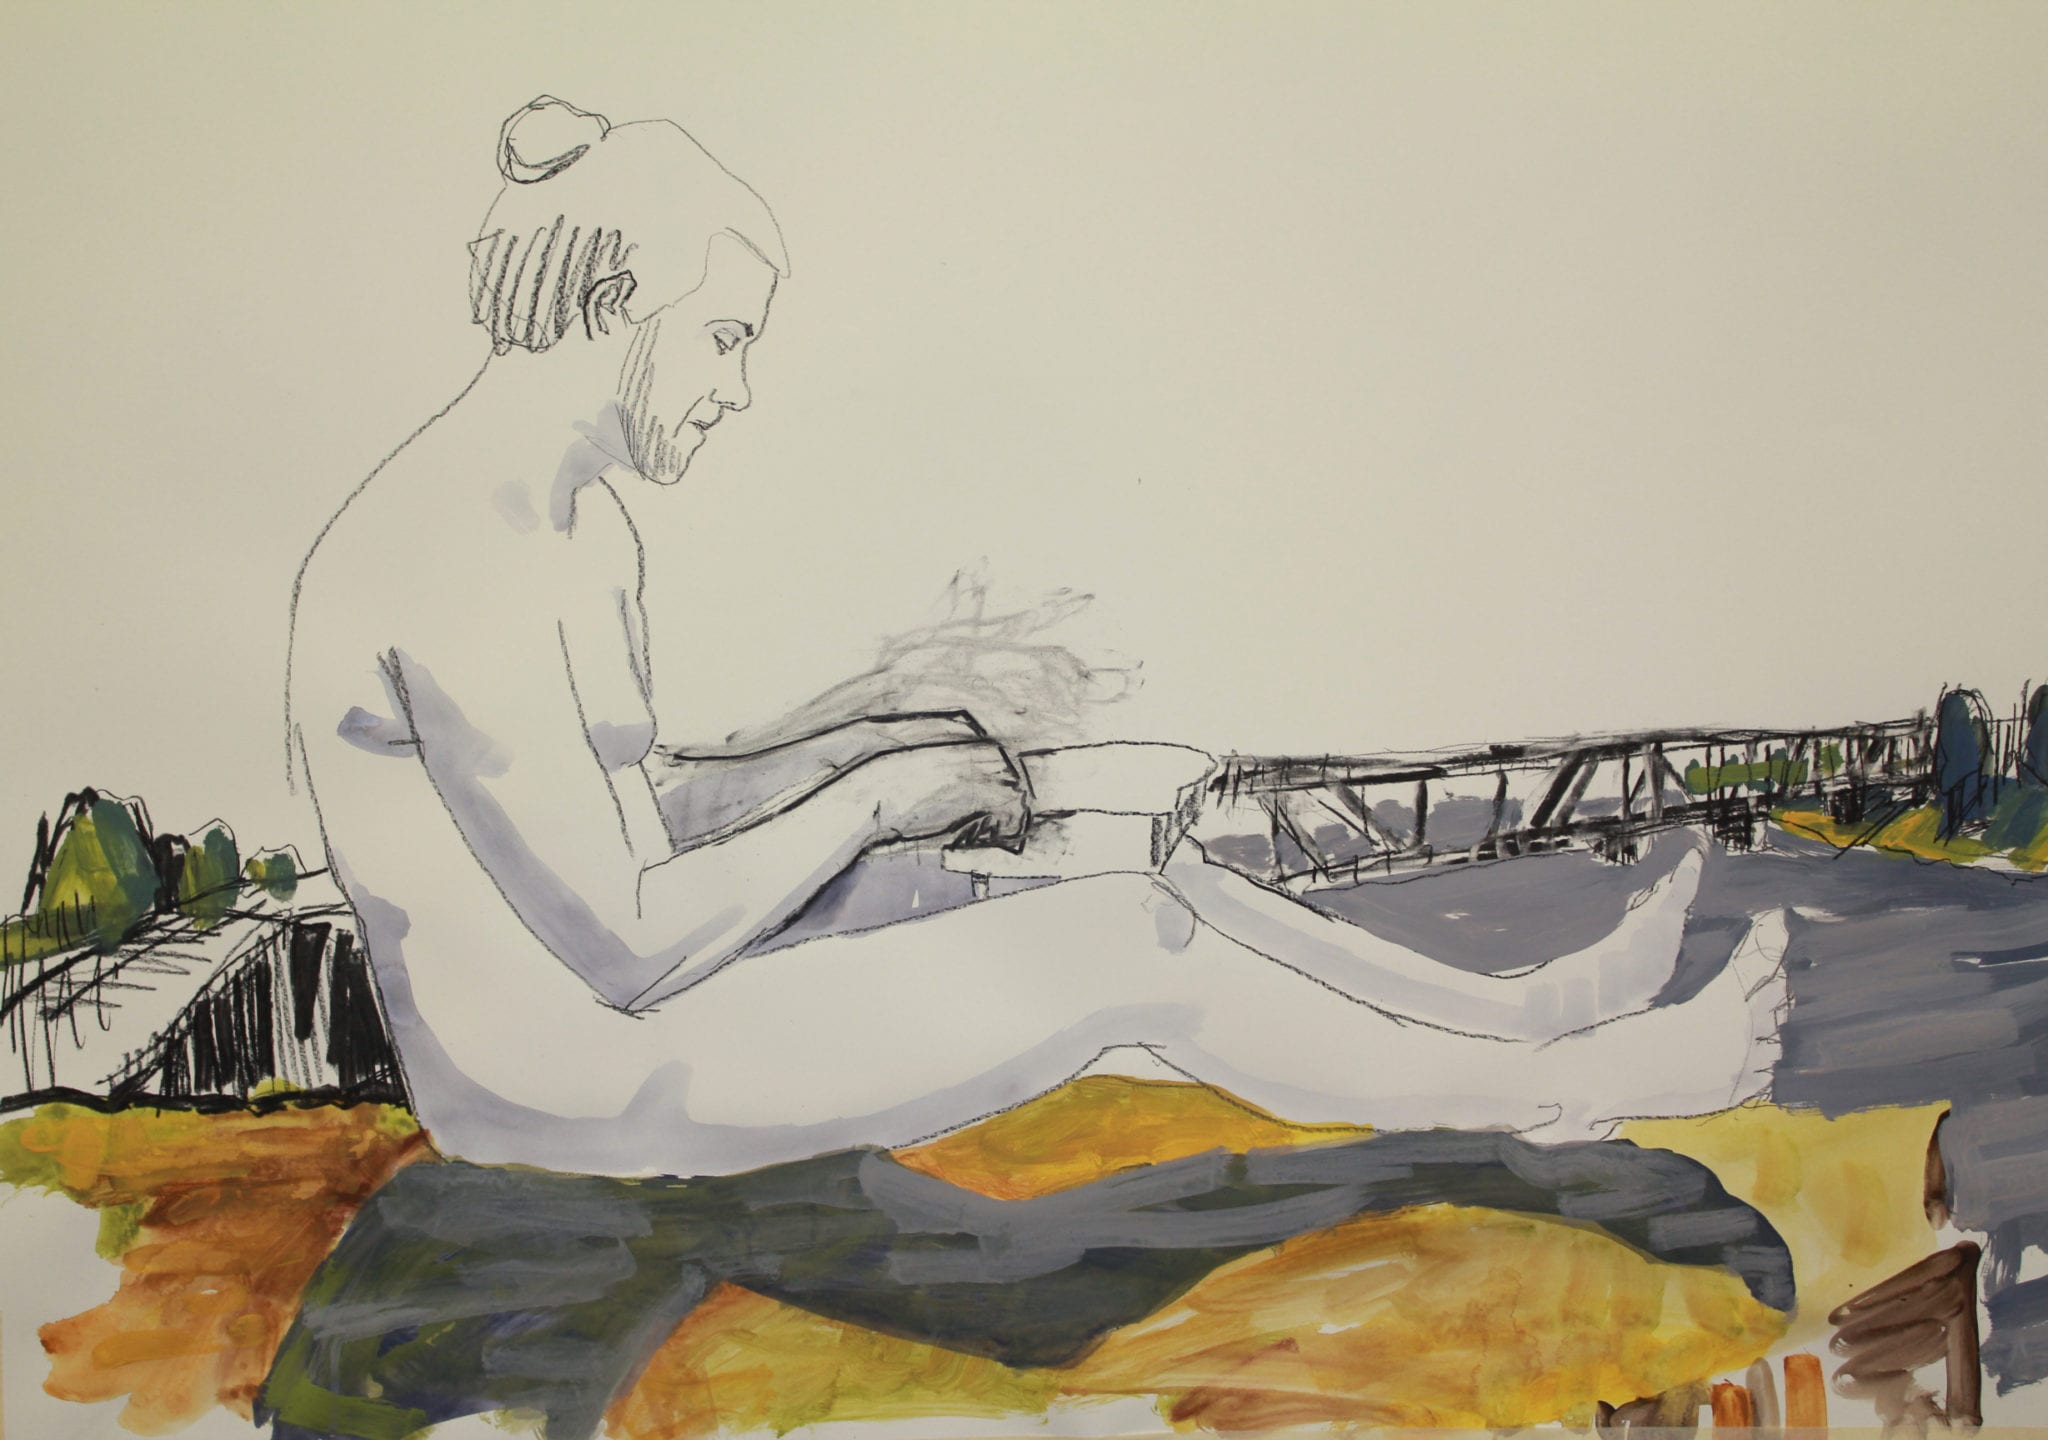 Image credit: Todd Fuller, Ode to Clarence, 2017/18, mixed media animation on paper, 6:42 min. Winner of the 2018 JADA.